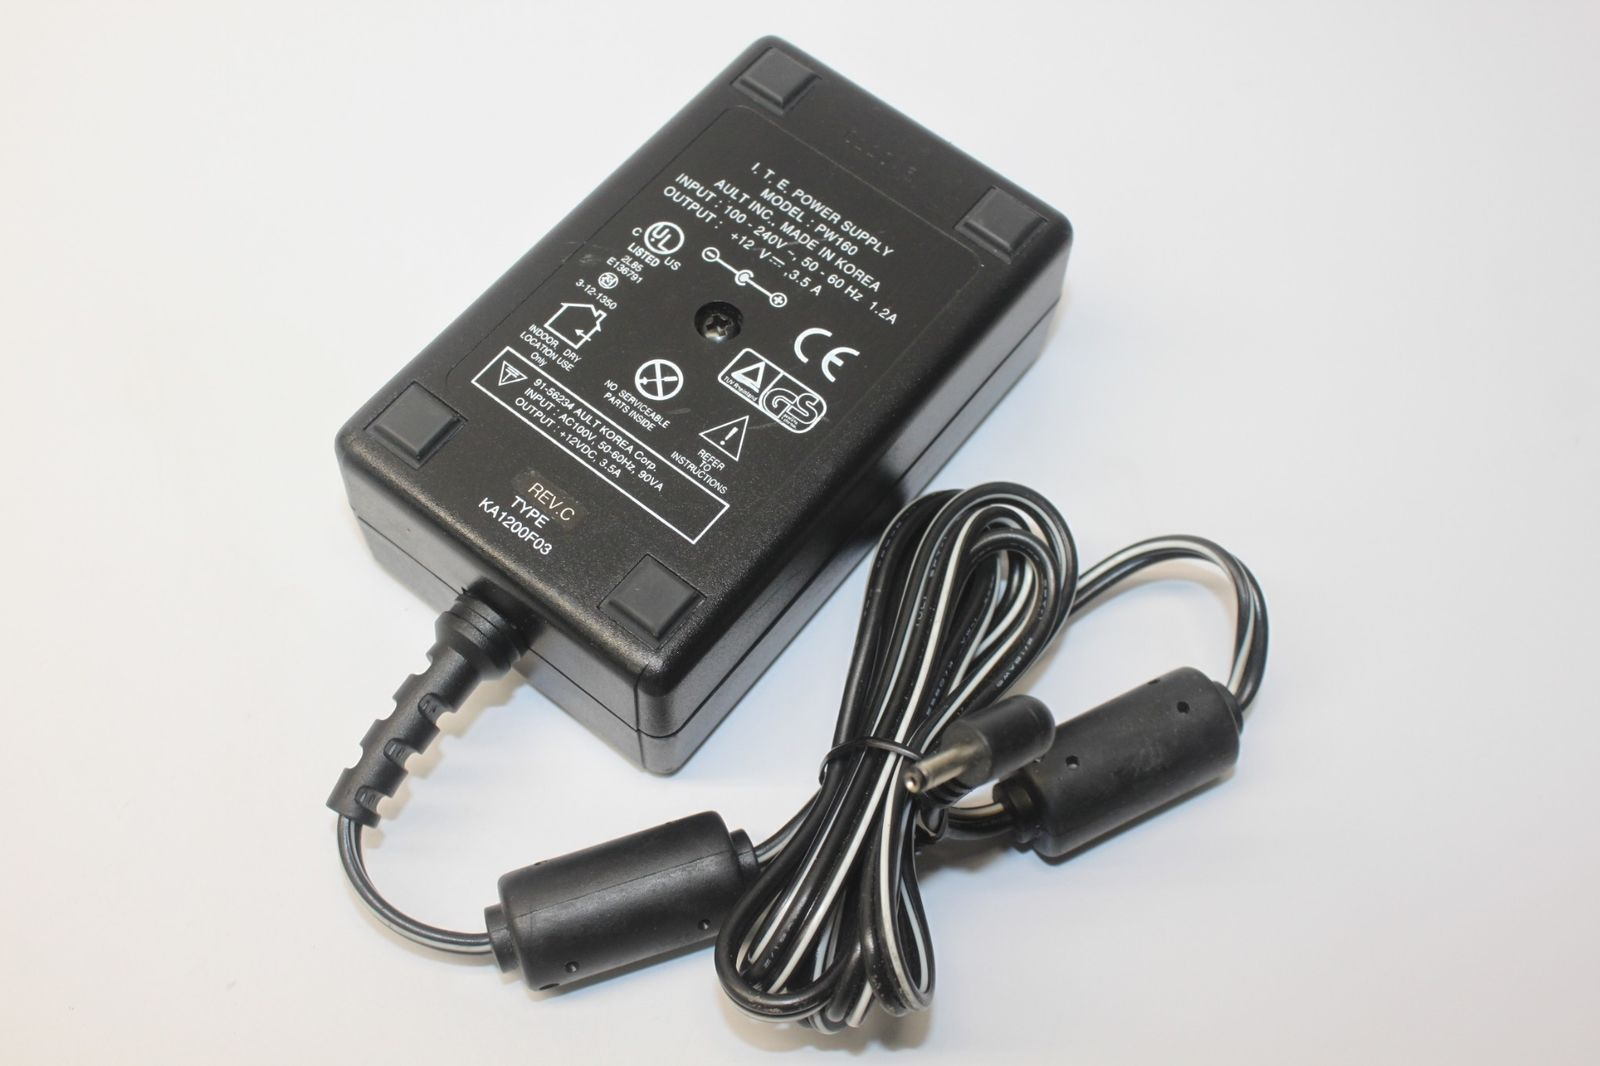 New Ault Pw160 Ka1200f03 Ac Adapter Dc 12v 3 5a Ite Power Supply Power Supply Adapter Power